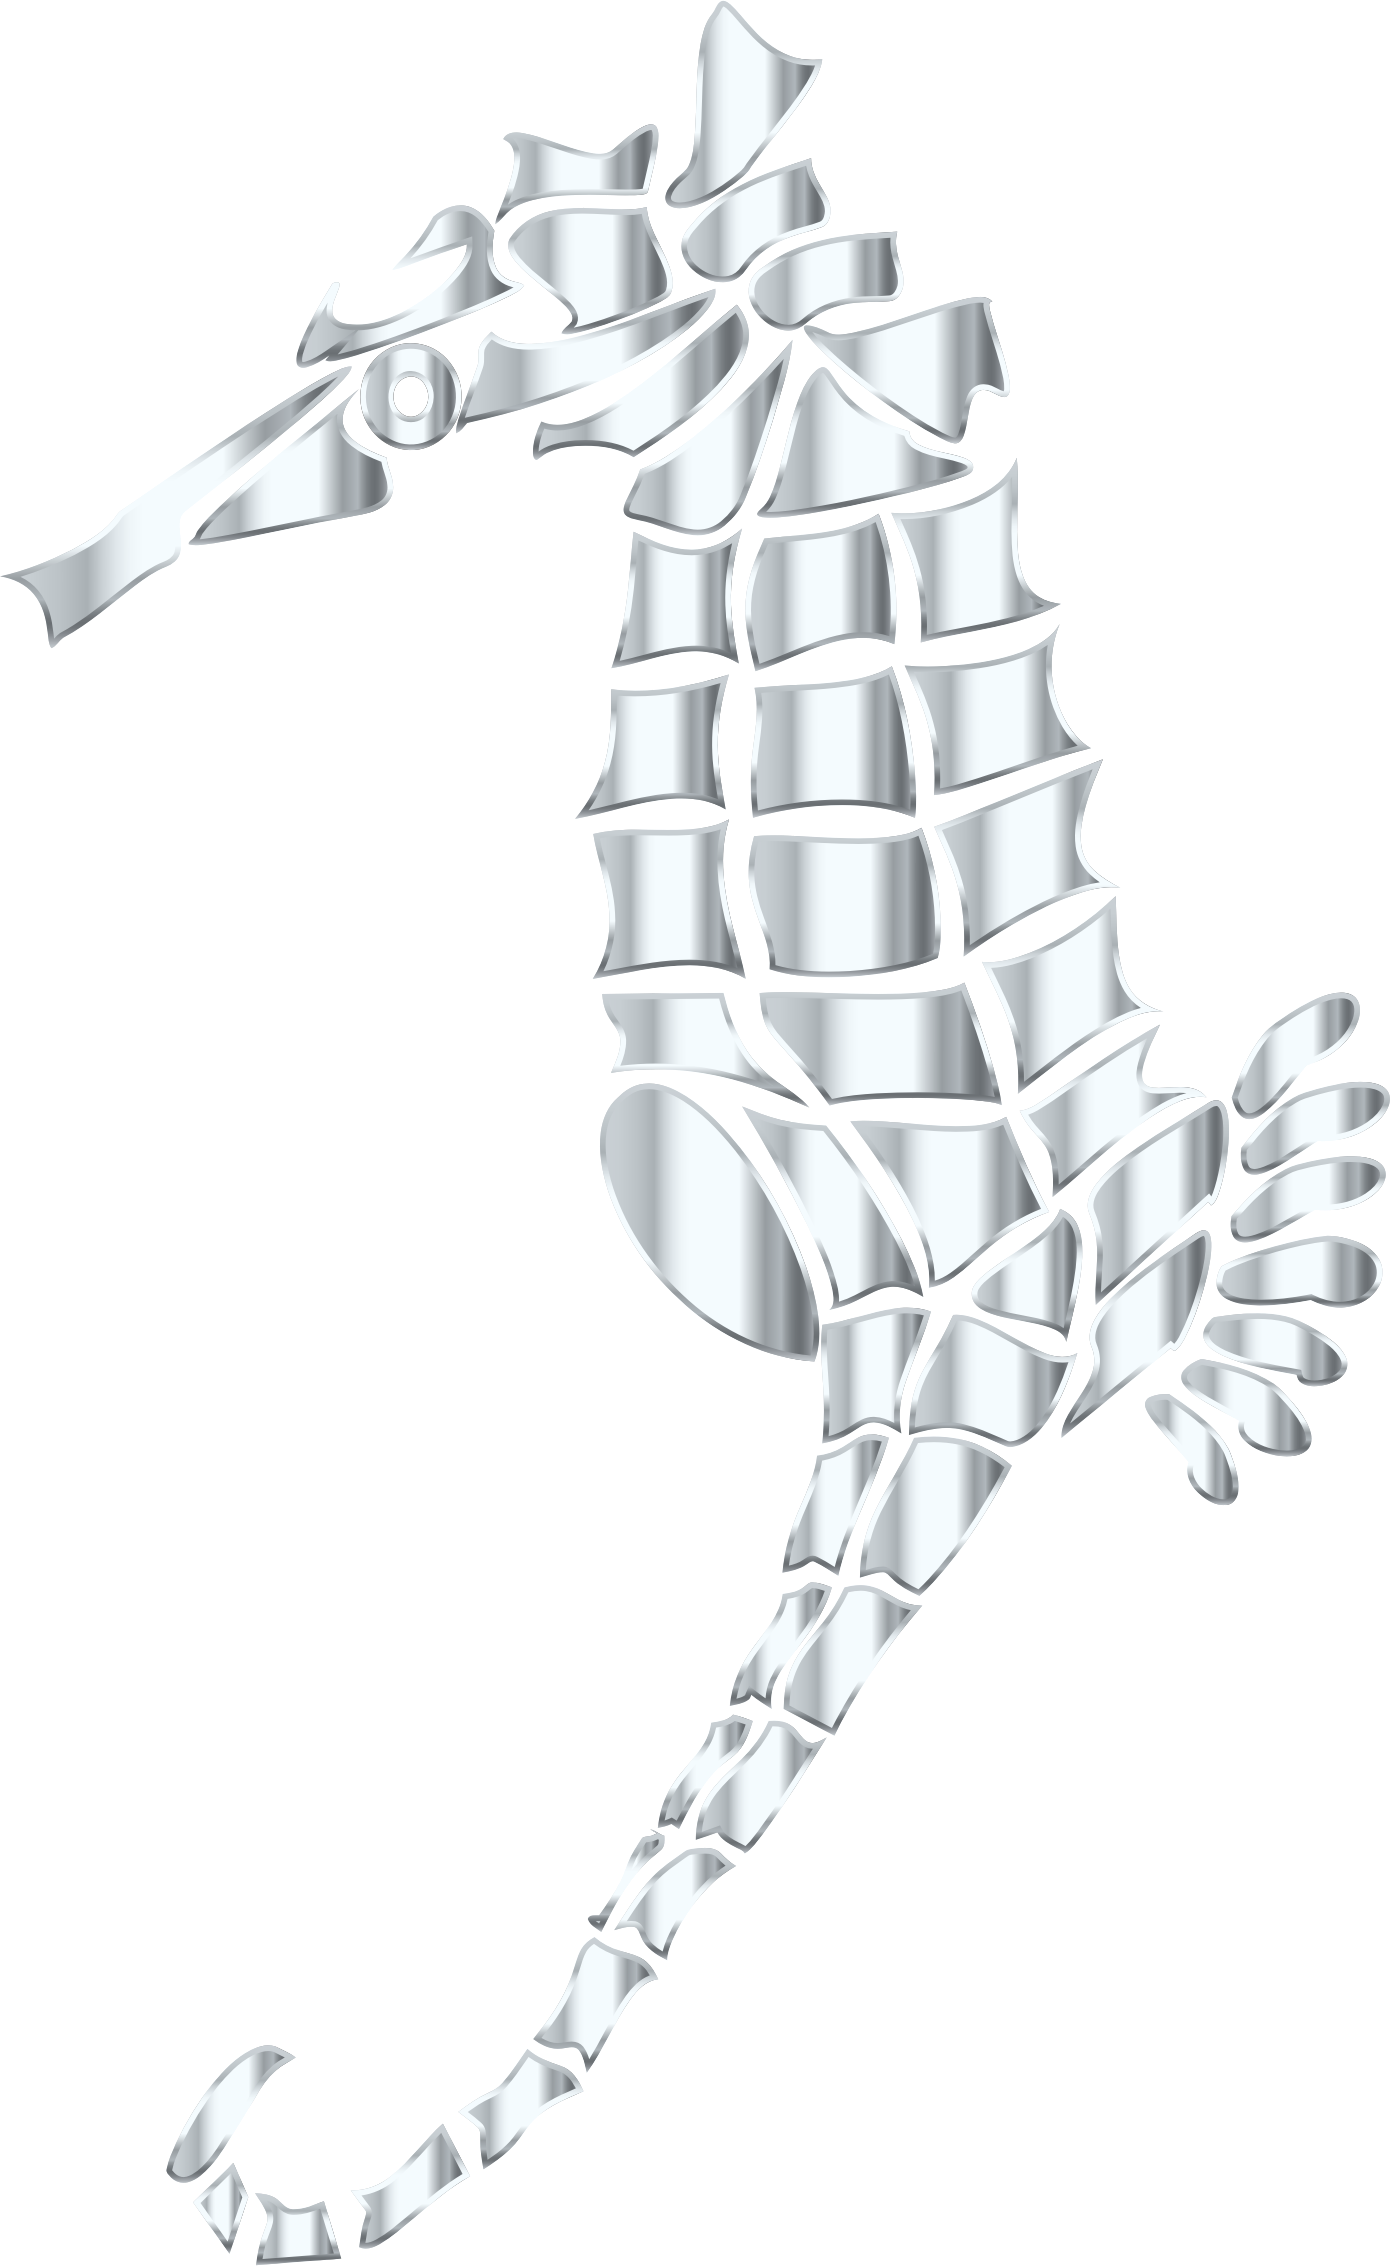 Silver Stylized Seahorse Silhouette No Background by GDJ